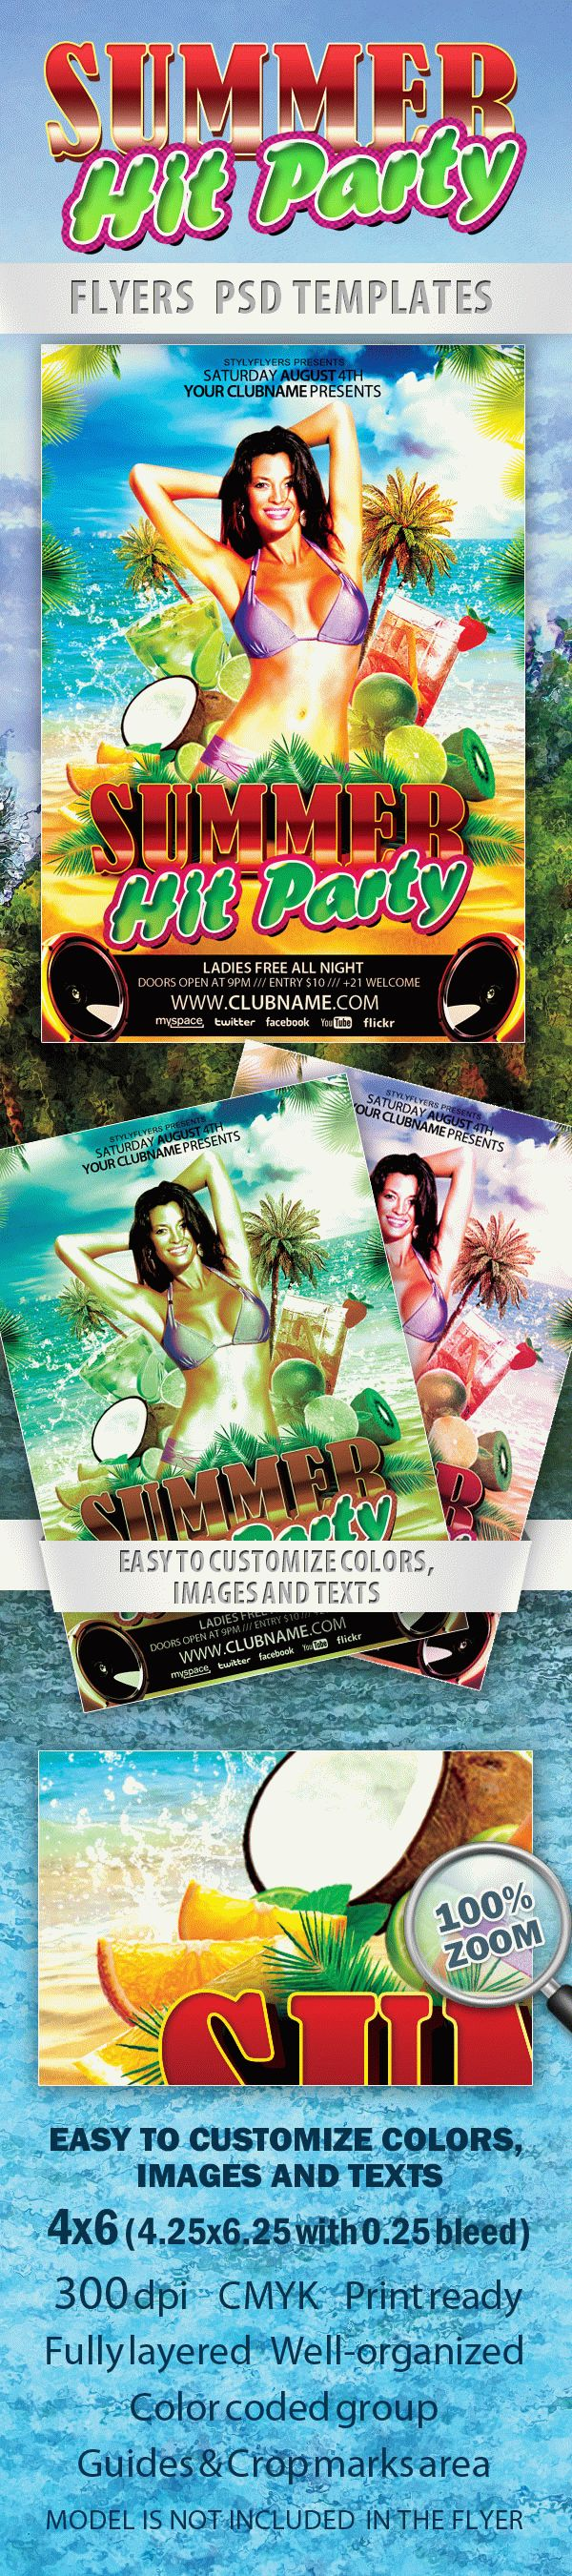 Summer Hit Party Free Flyer PSD Template